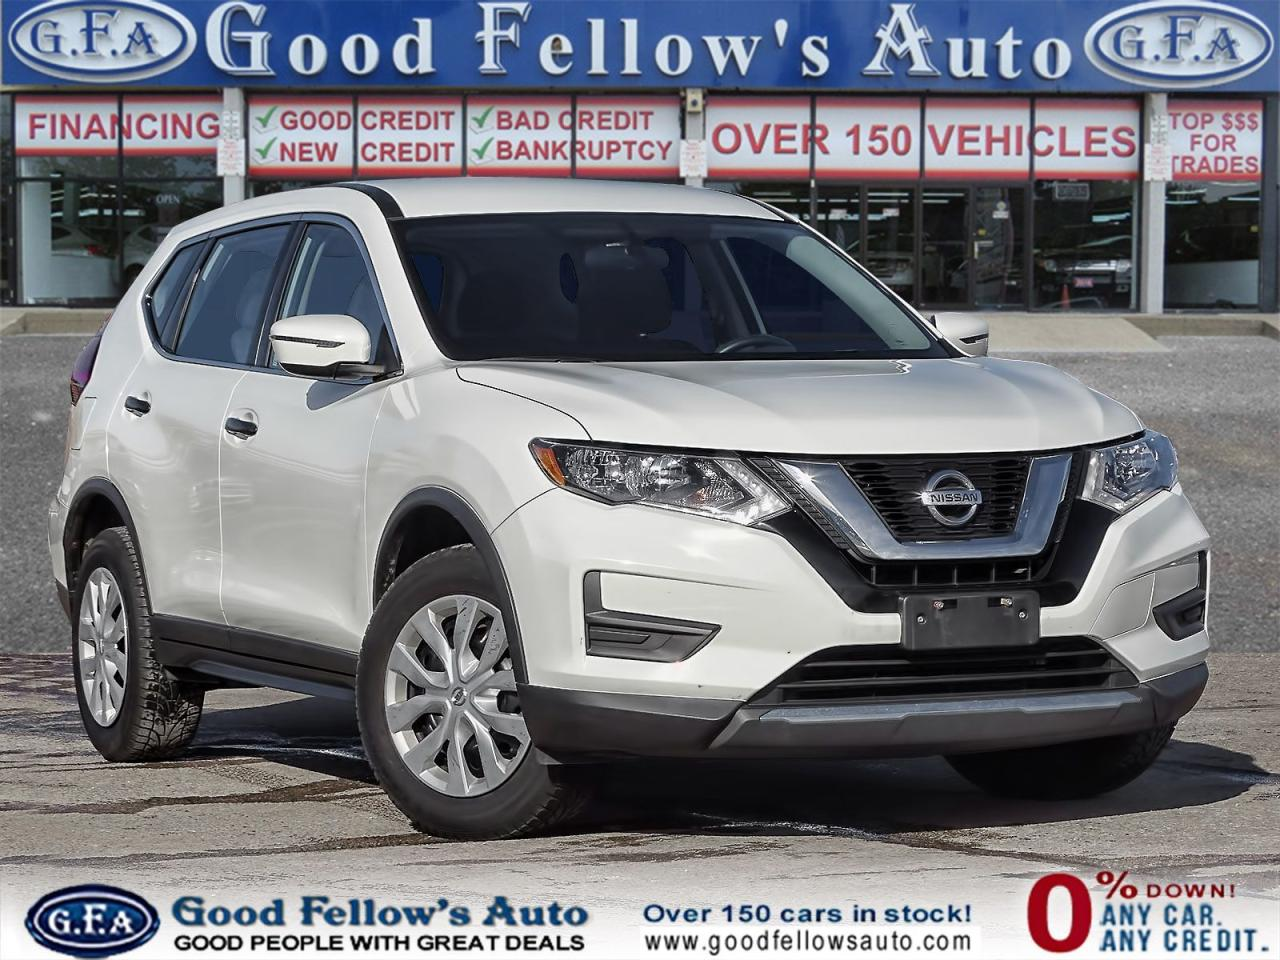 used 2017 Nissan Rogue car, priced at $13,400